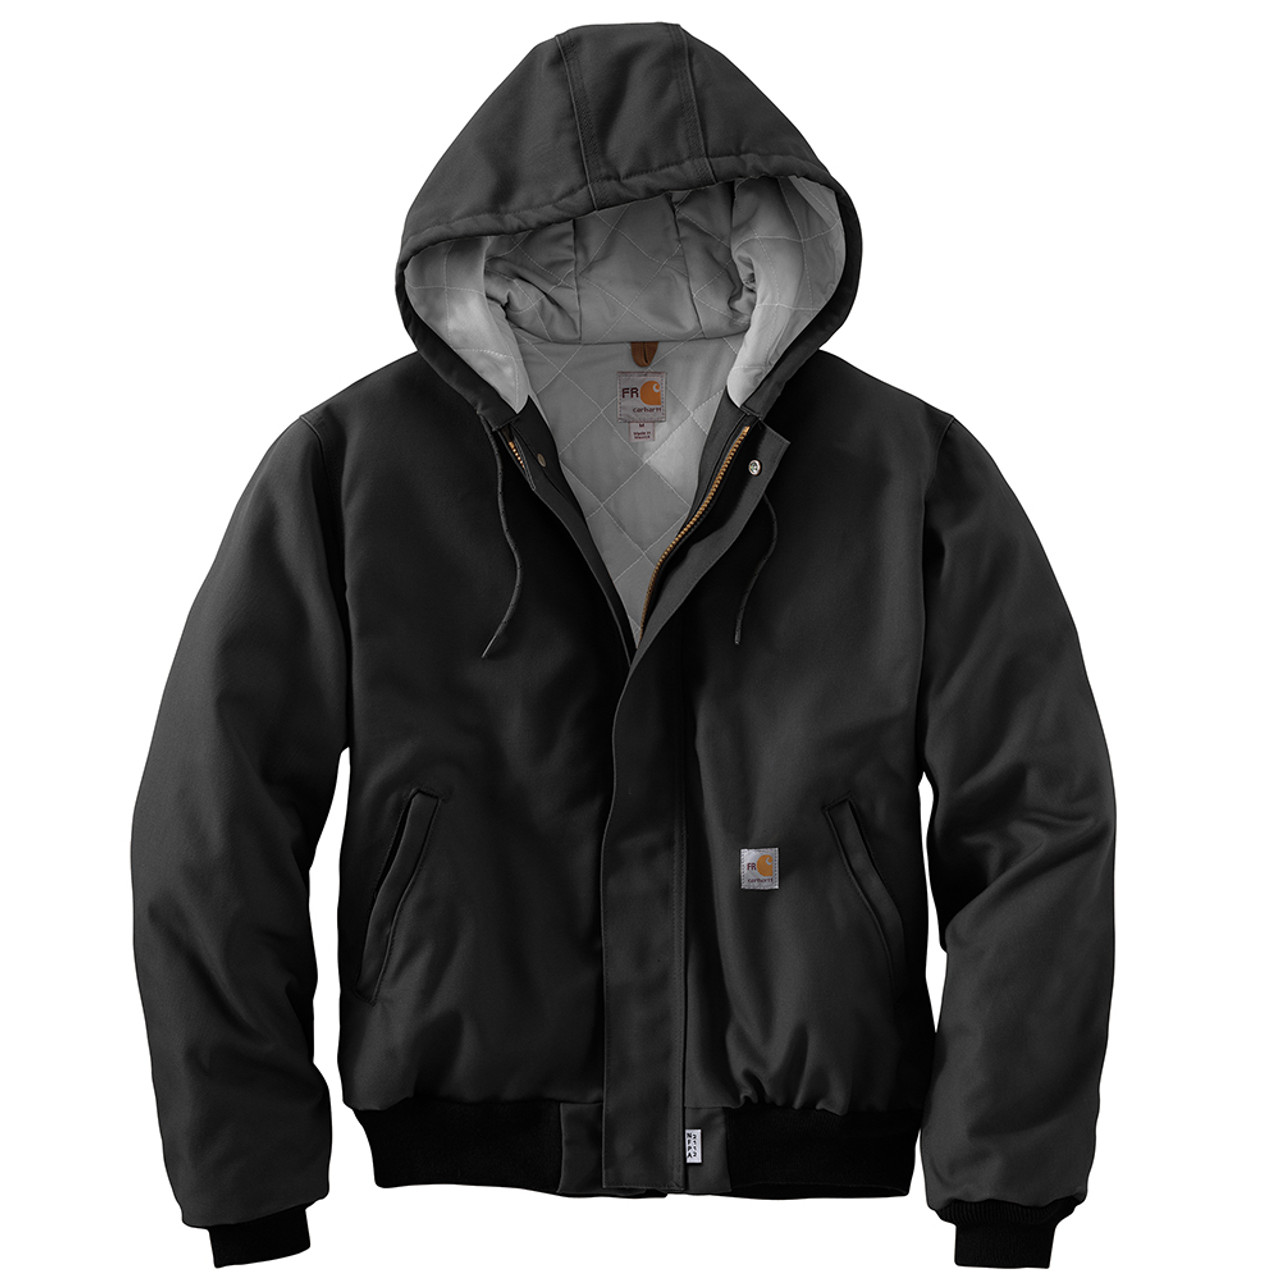 46dbe1575691 Carhartt 54 cal cm2 Men s Flame Resistant Duck Active Jacket - 101621 - 70E  Solutions